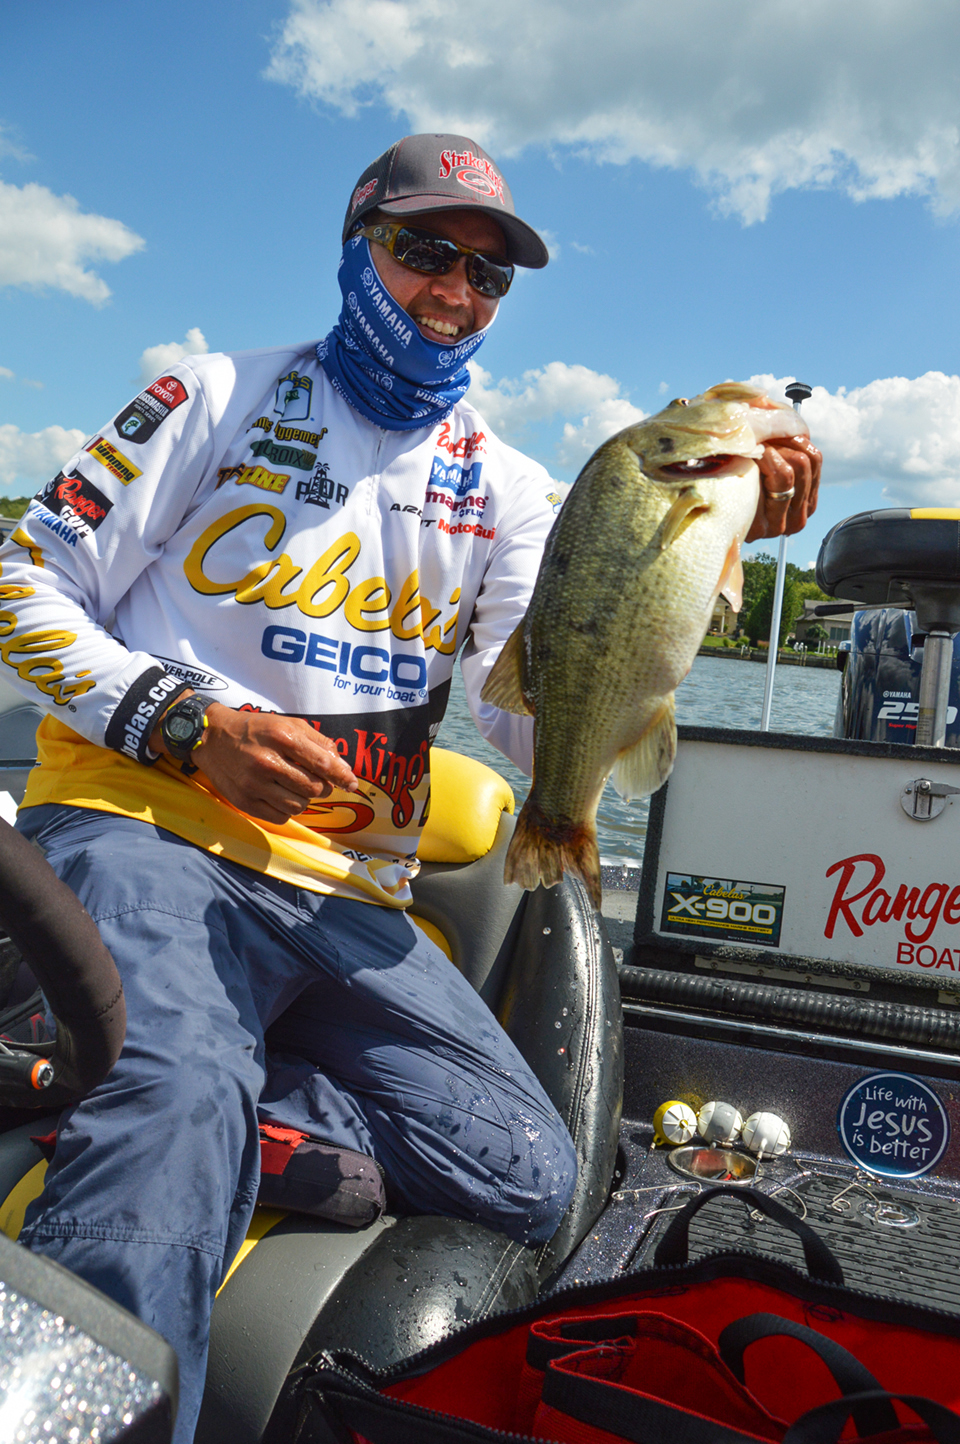 BASSfest sets up well for the Texas gang. James Niggemeyer will quietly put a Texas whoopin' on Texoma. Photo by Joel Shangle.